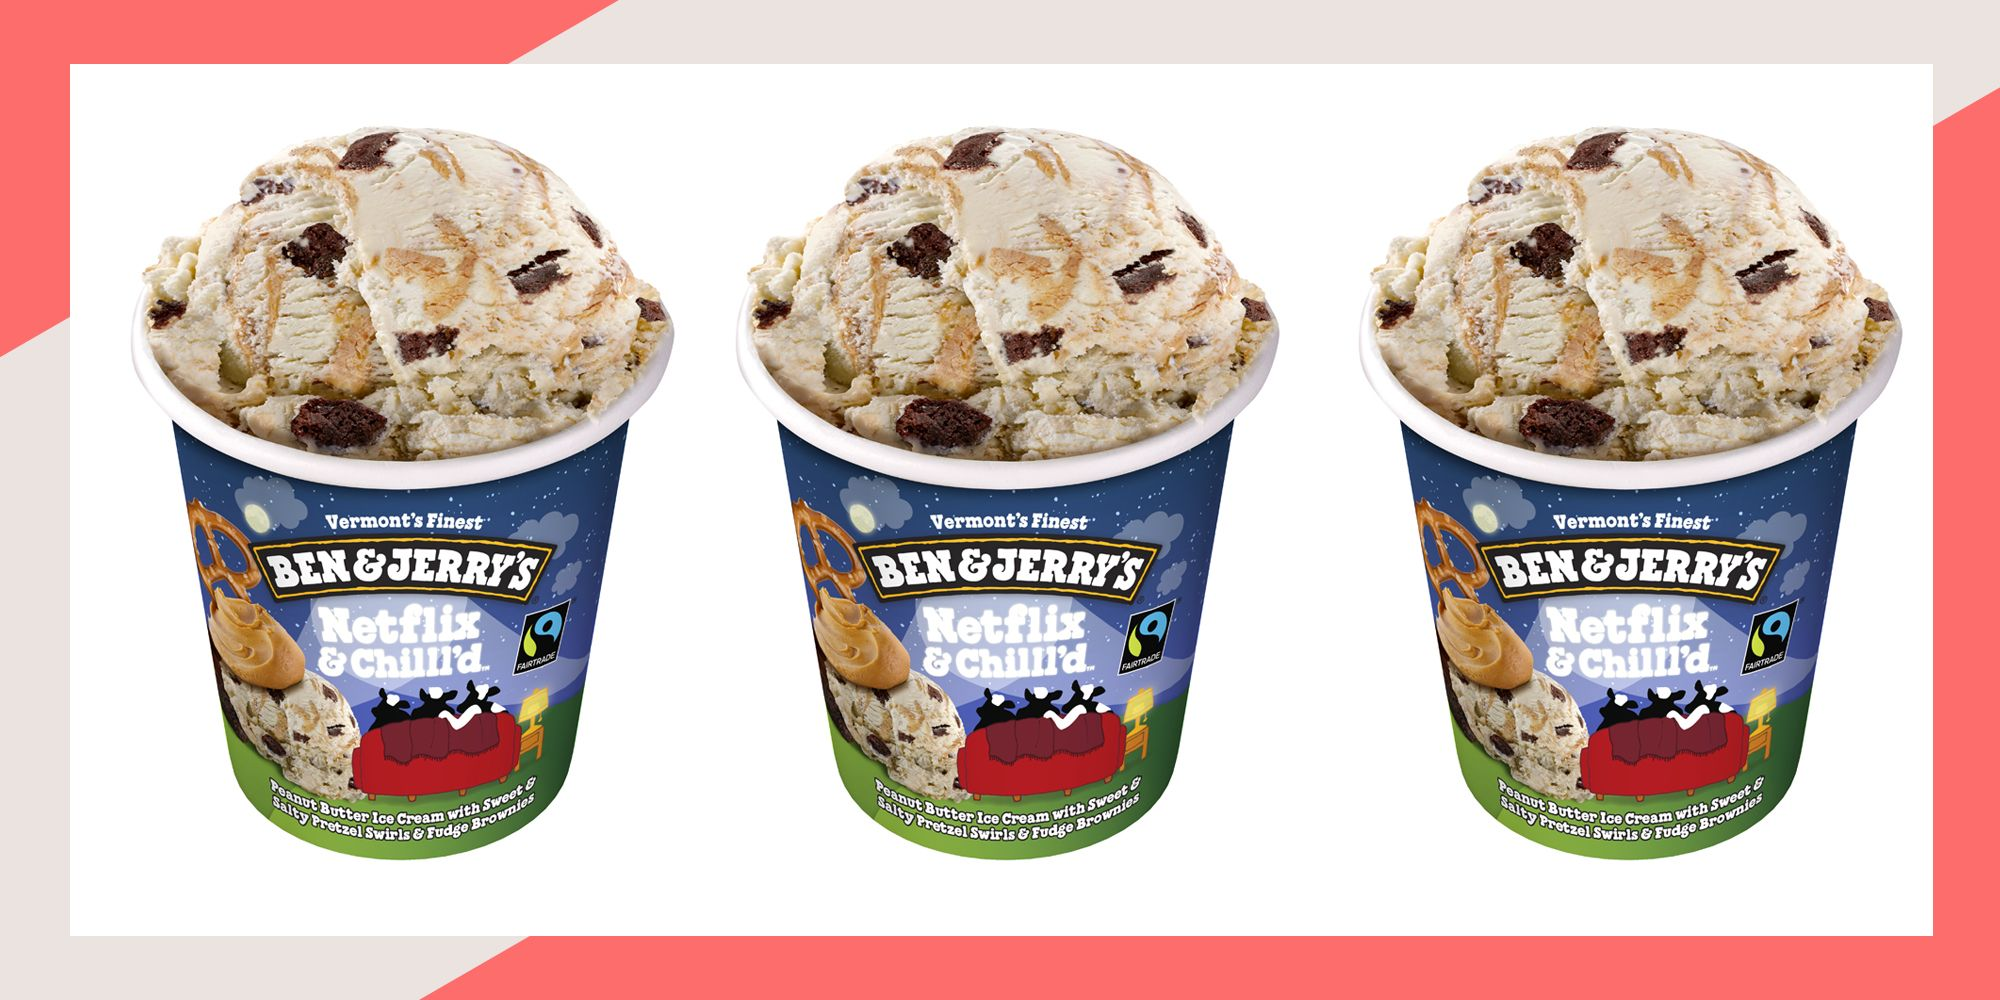 Ben & Jerry's have launched a delicious new 'Netflix & Chilll'd' flavour